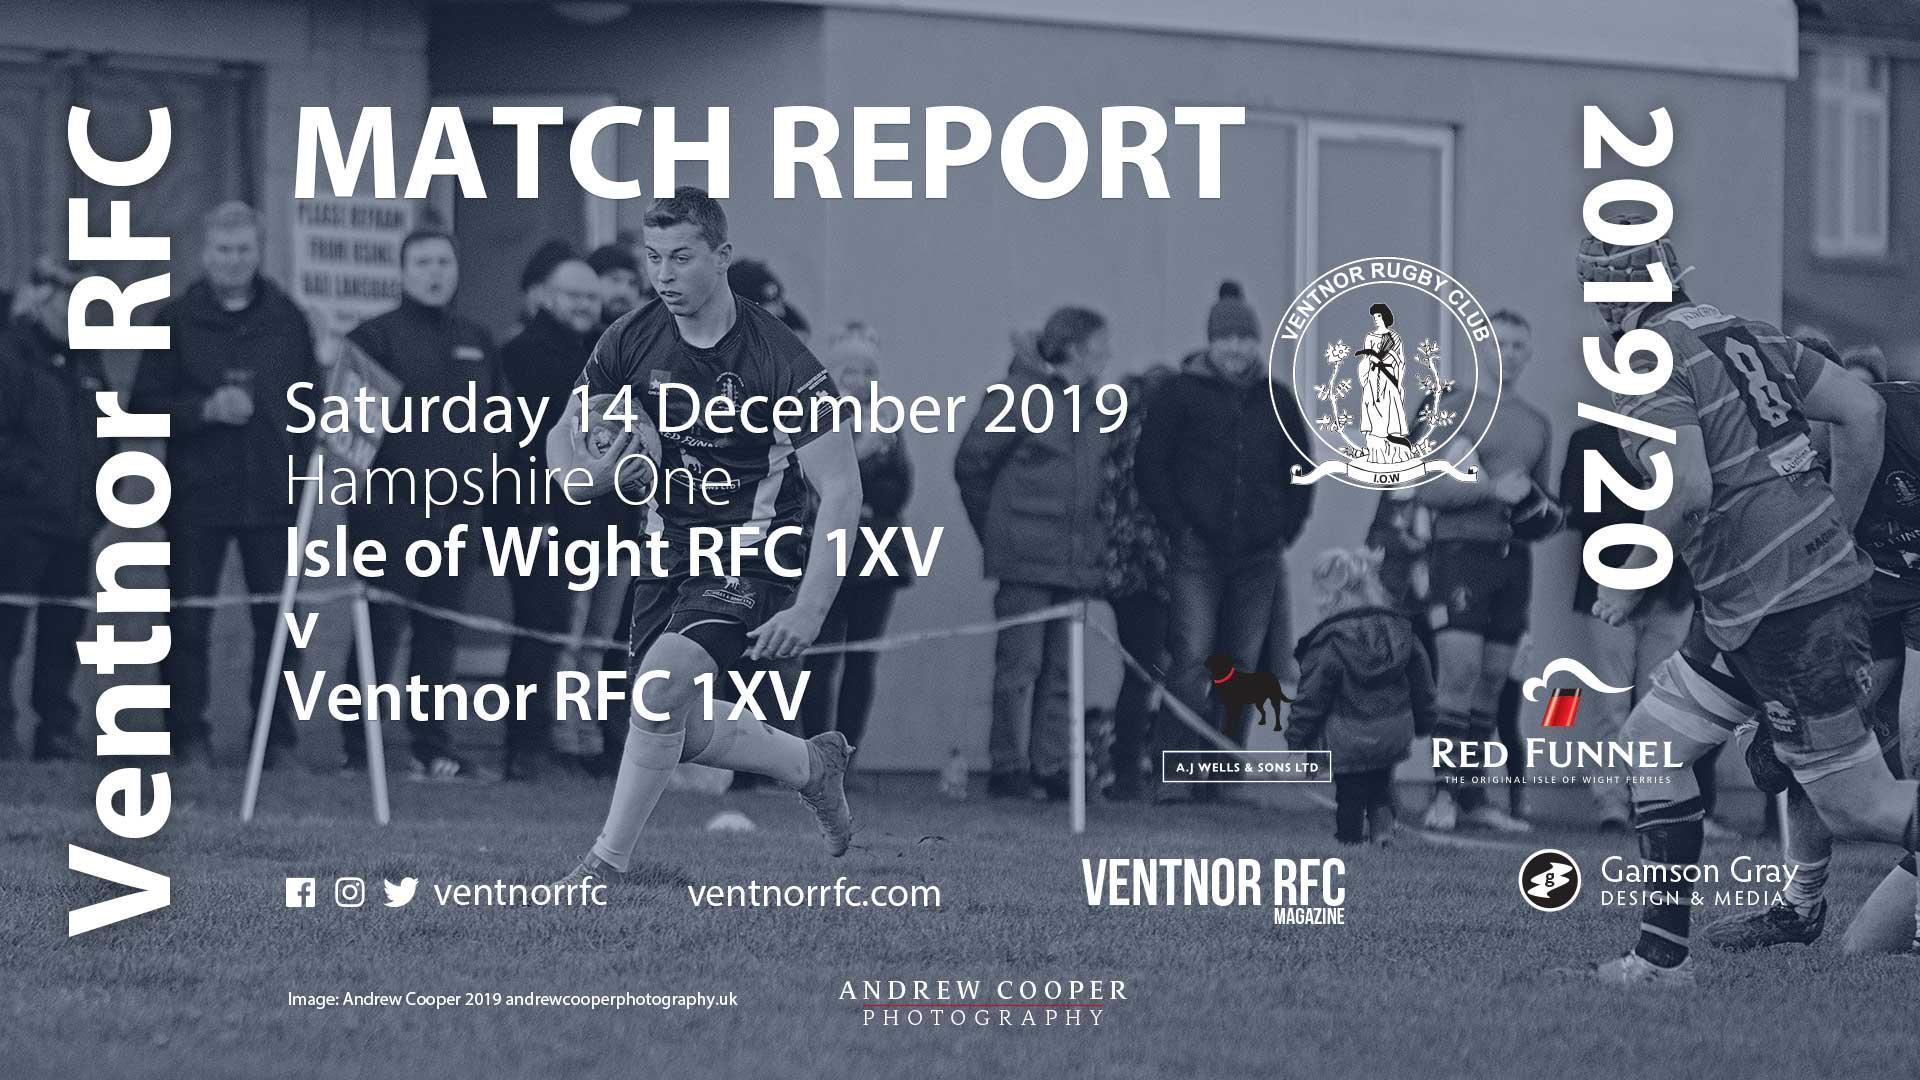 Isle of Wight RFC 1XV 27-8 Ventnor RFC 1XV, 14 Dec 2019